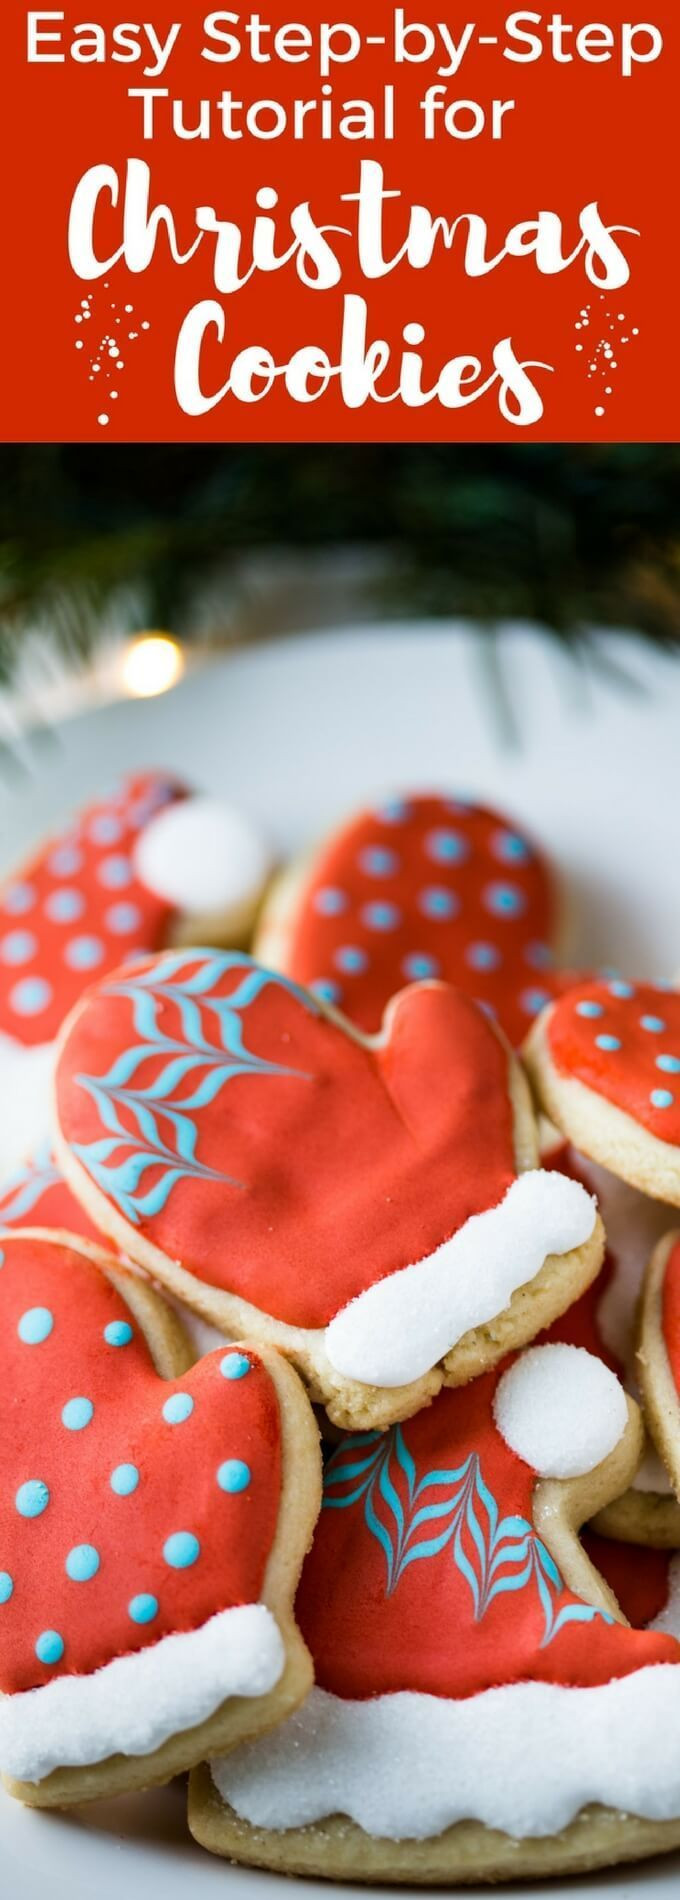 Decorated Christmas Cookies Recipes  An easy Christmas Cookie Decorating Tutorial for Hat and